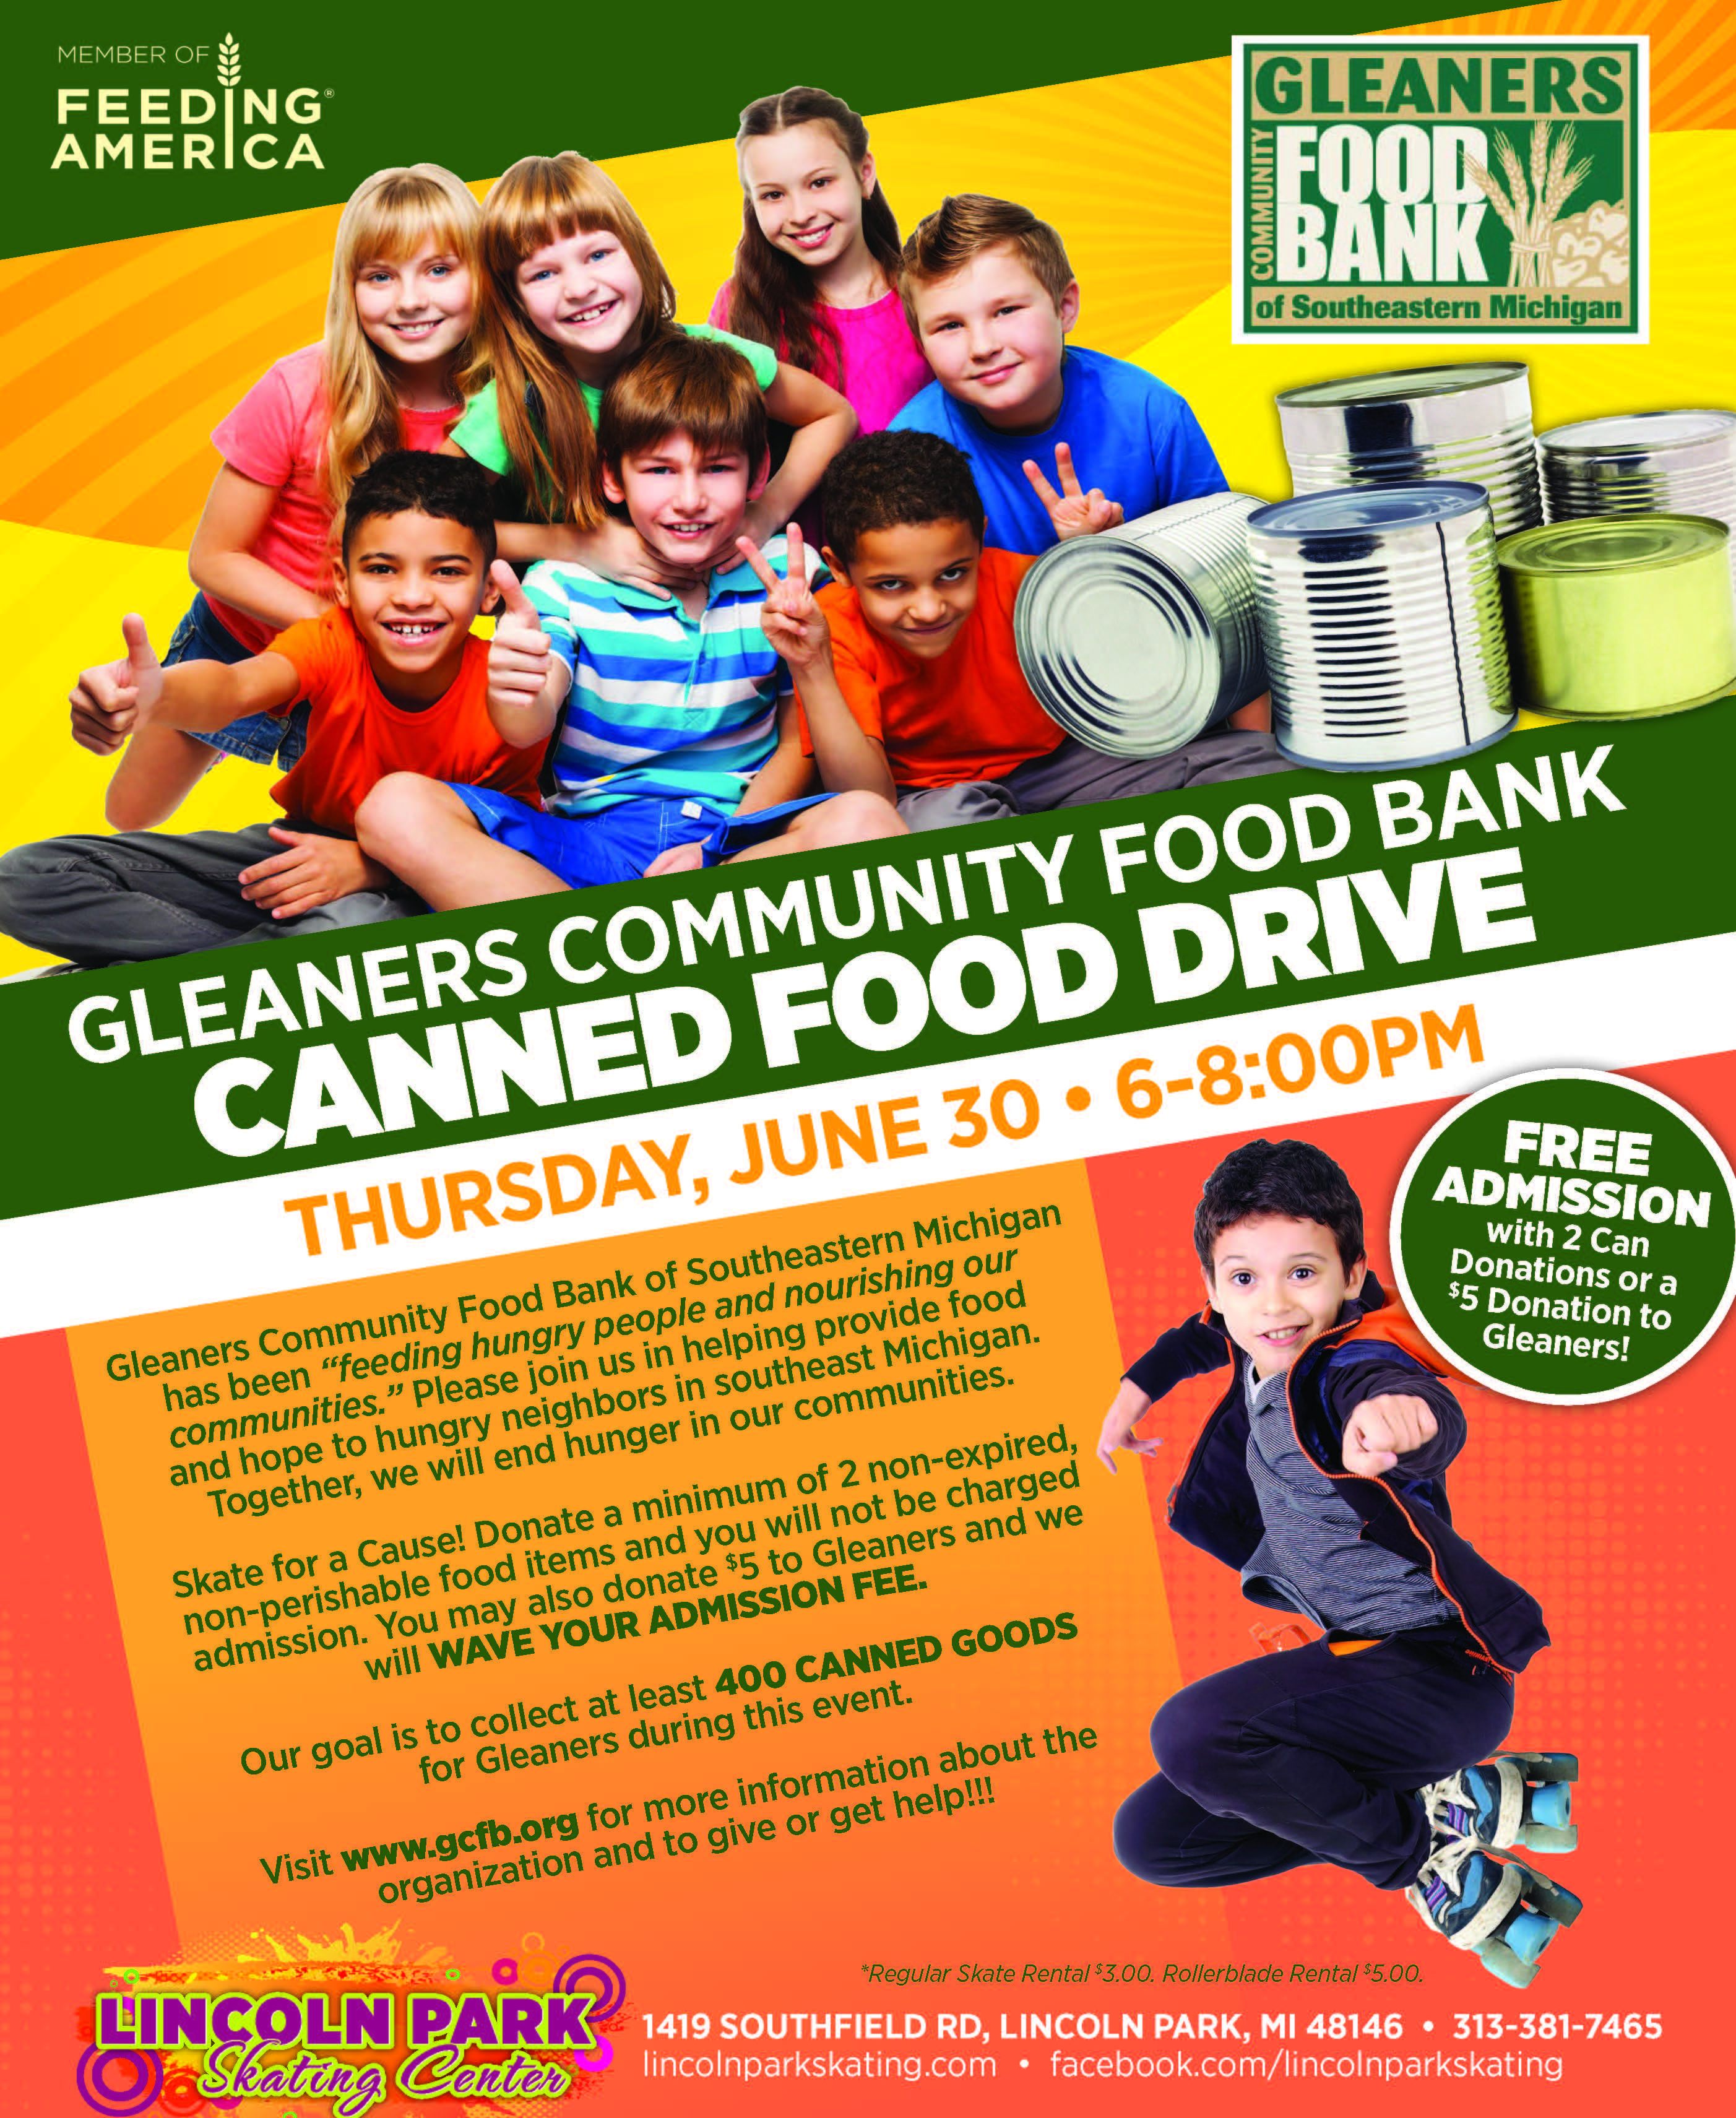 Skating_Gleaners_Food_Drive_Flyer.jpg